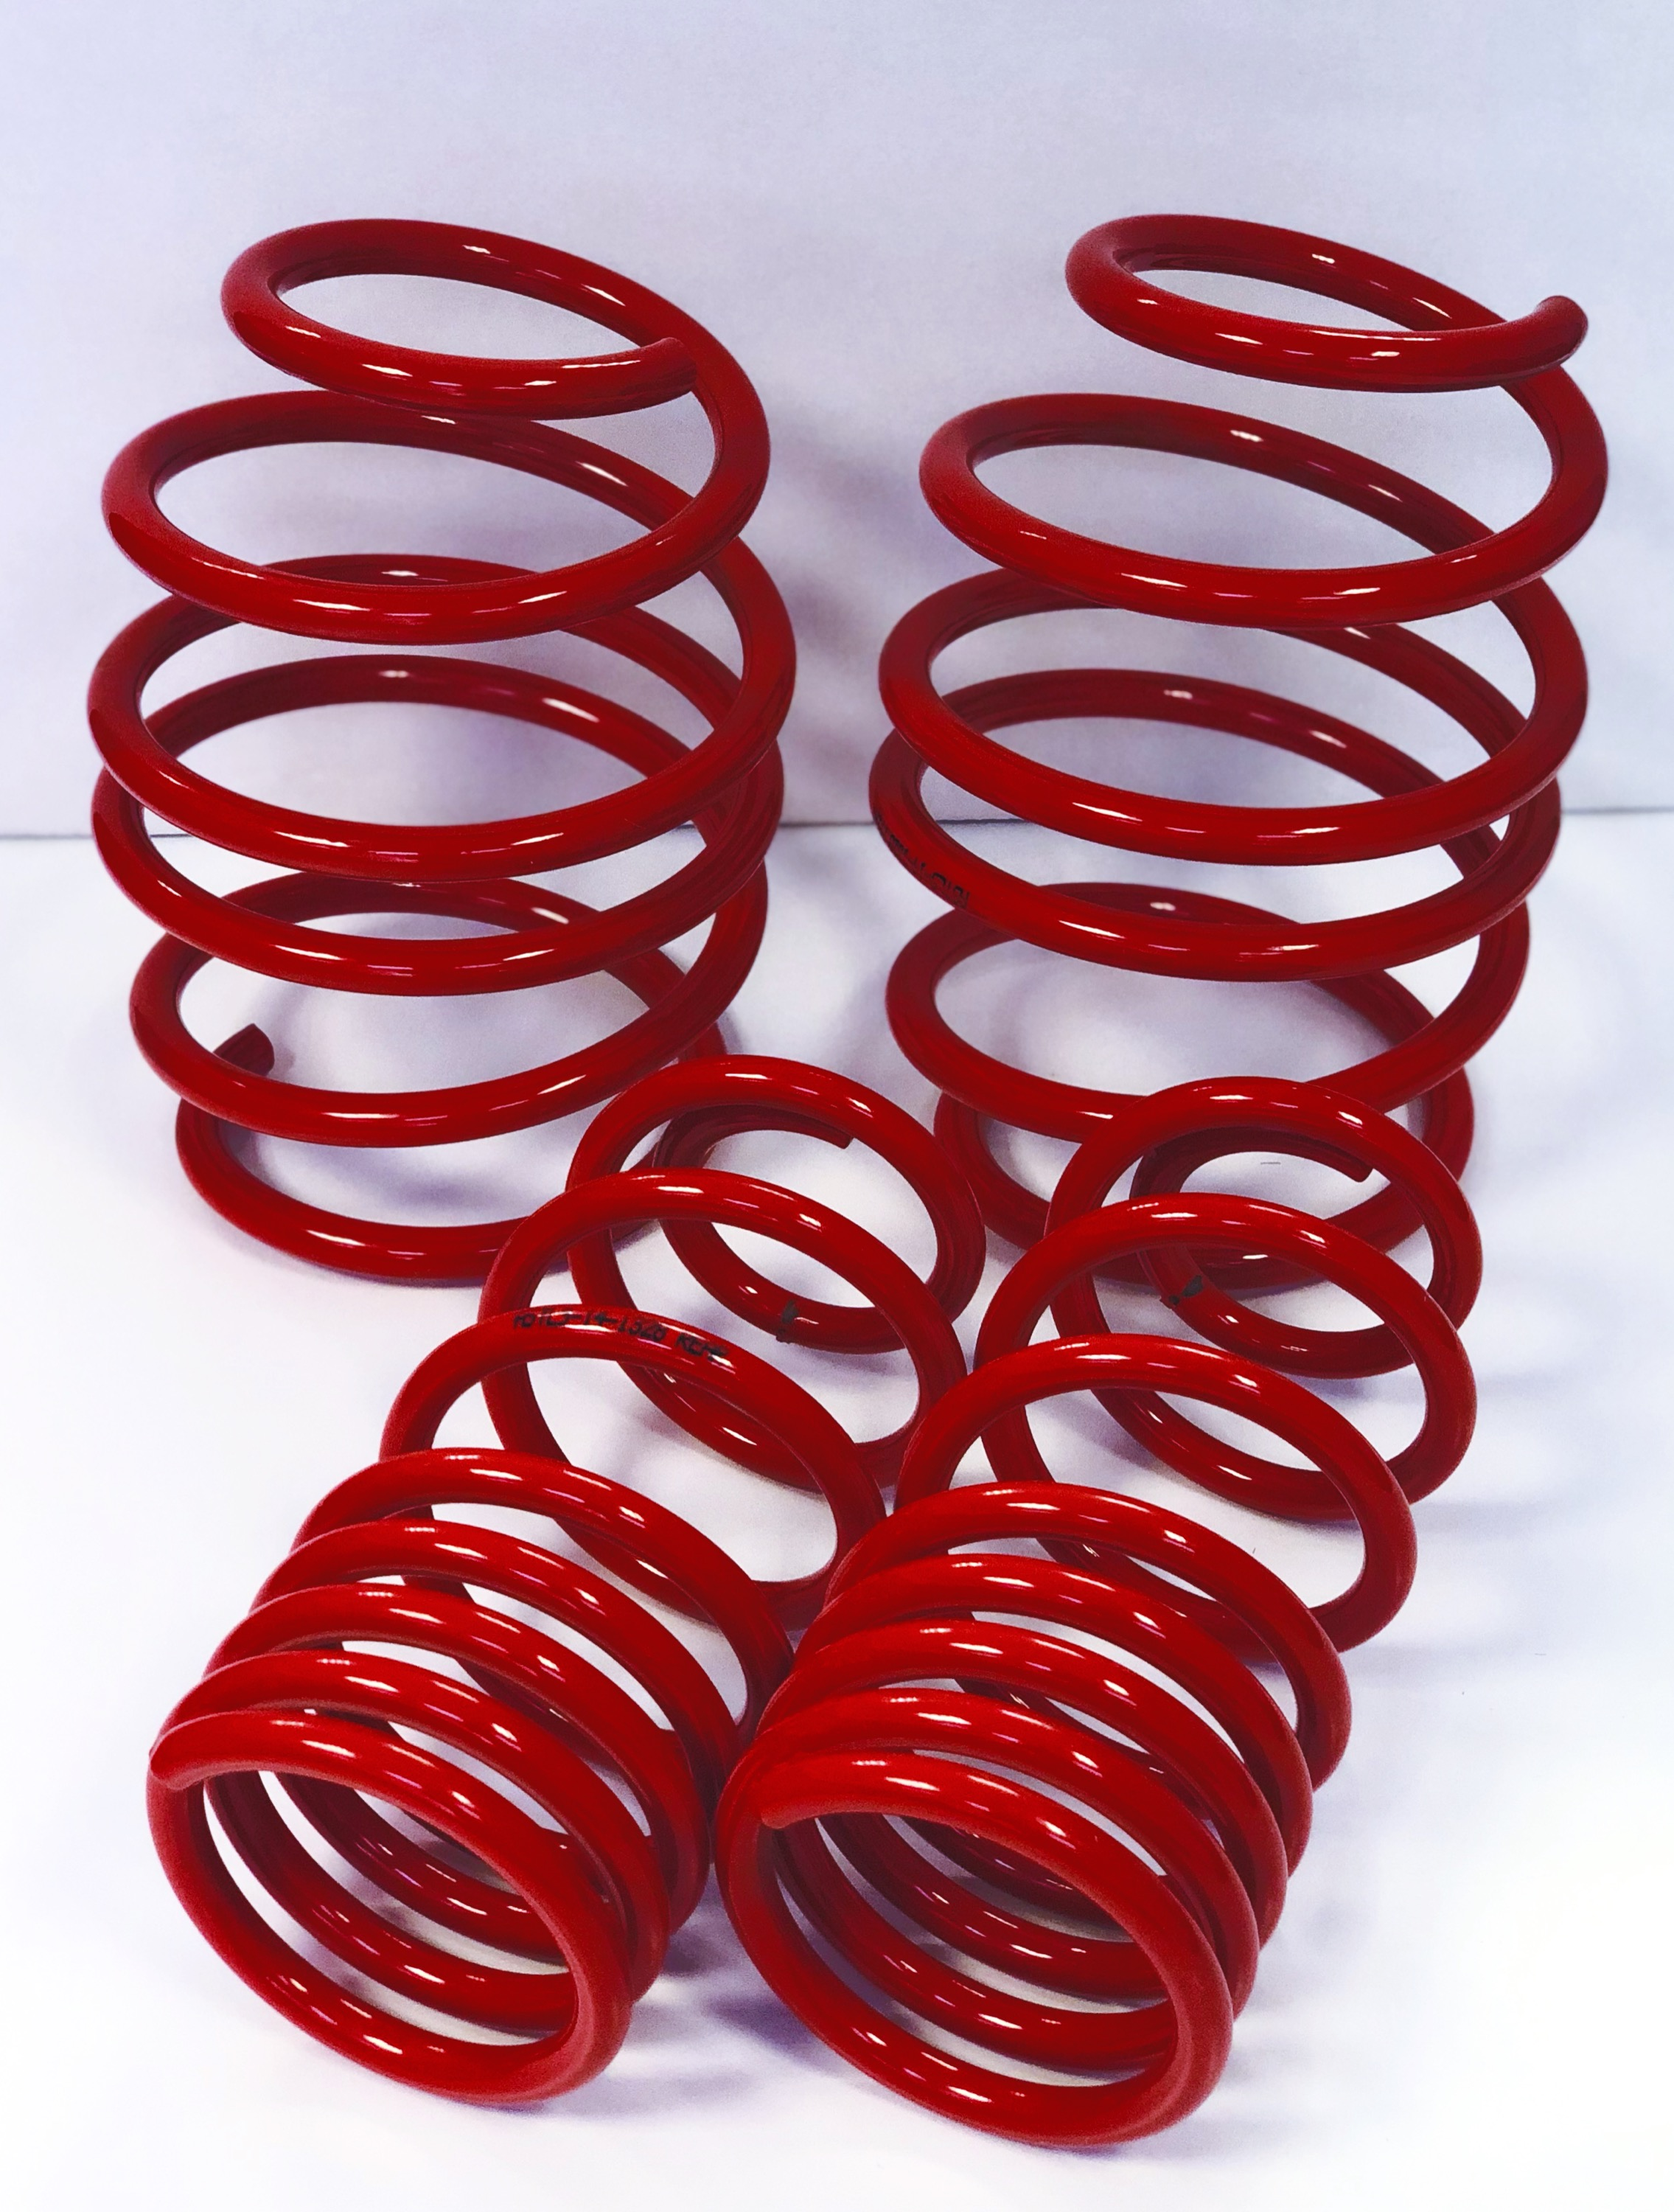 Vauxhall INSIGNIA AST Suspension Lowering Springs 35MM